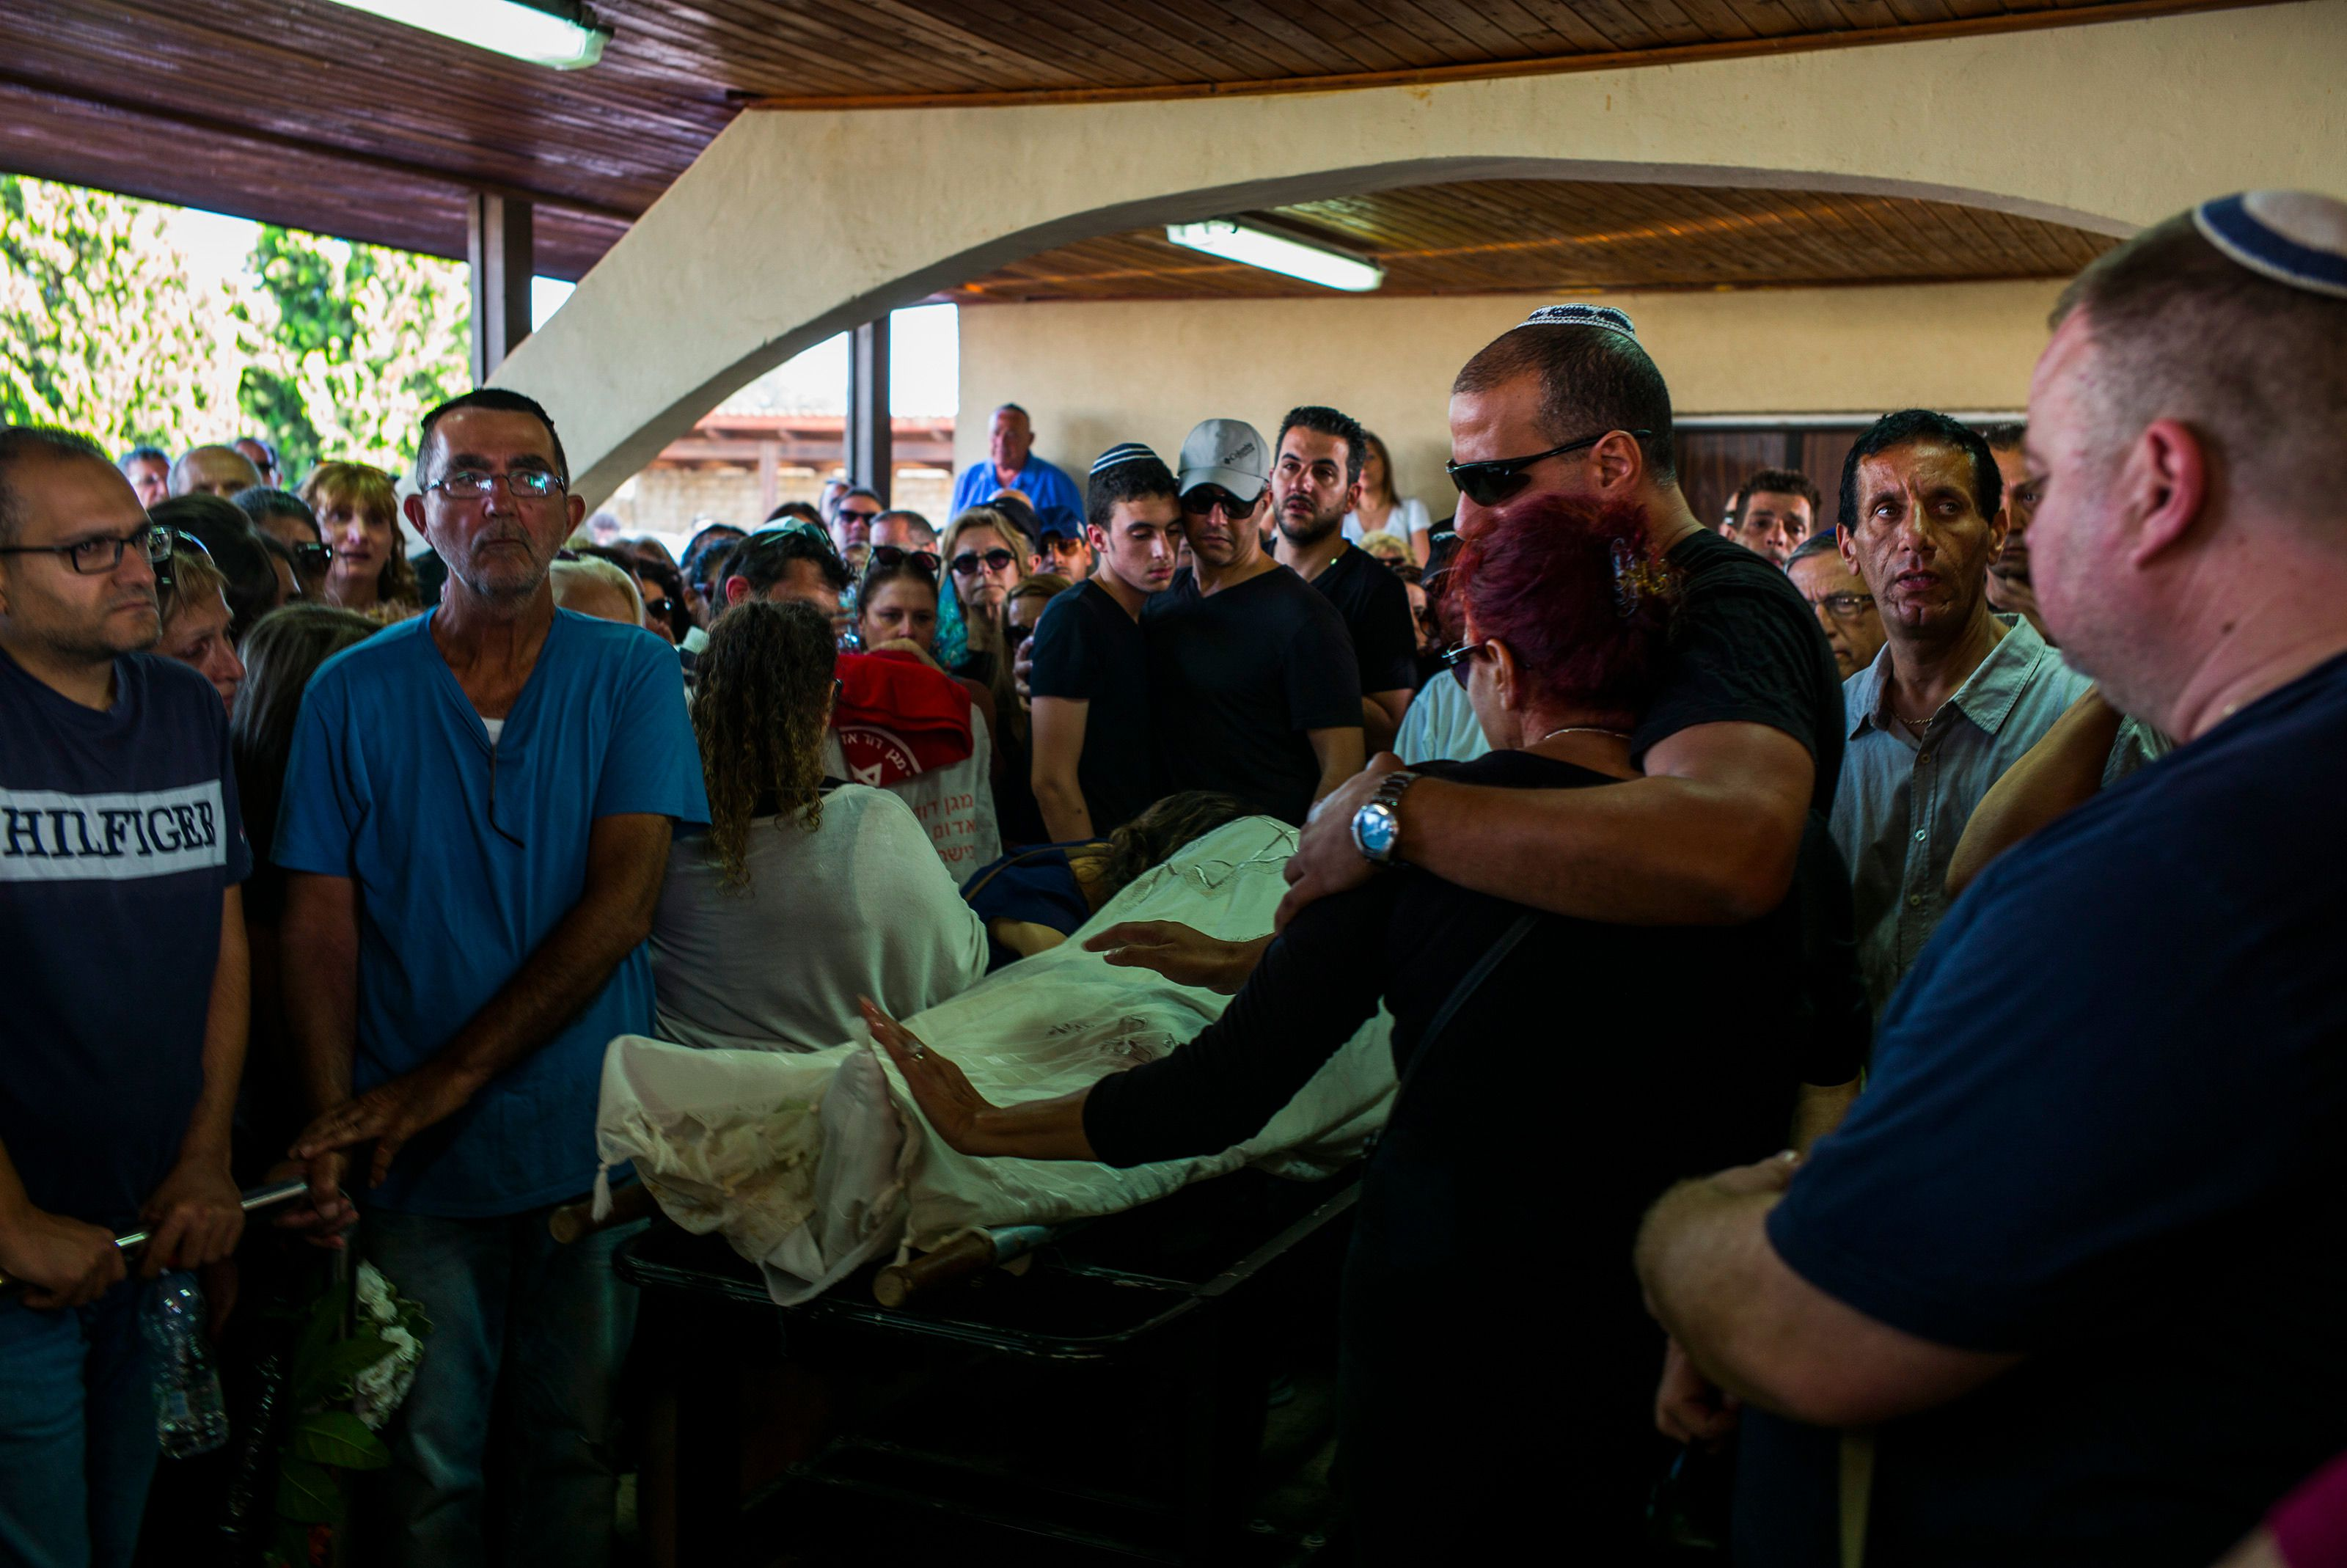 Family members of Ido Ben Ari mourning his death at his funeral on June 9, 2016 in Yavneh, Israel.